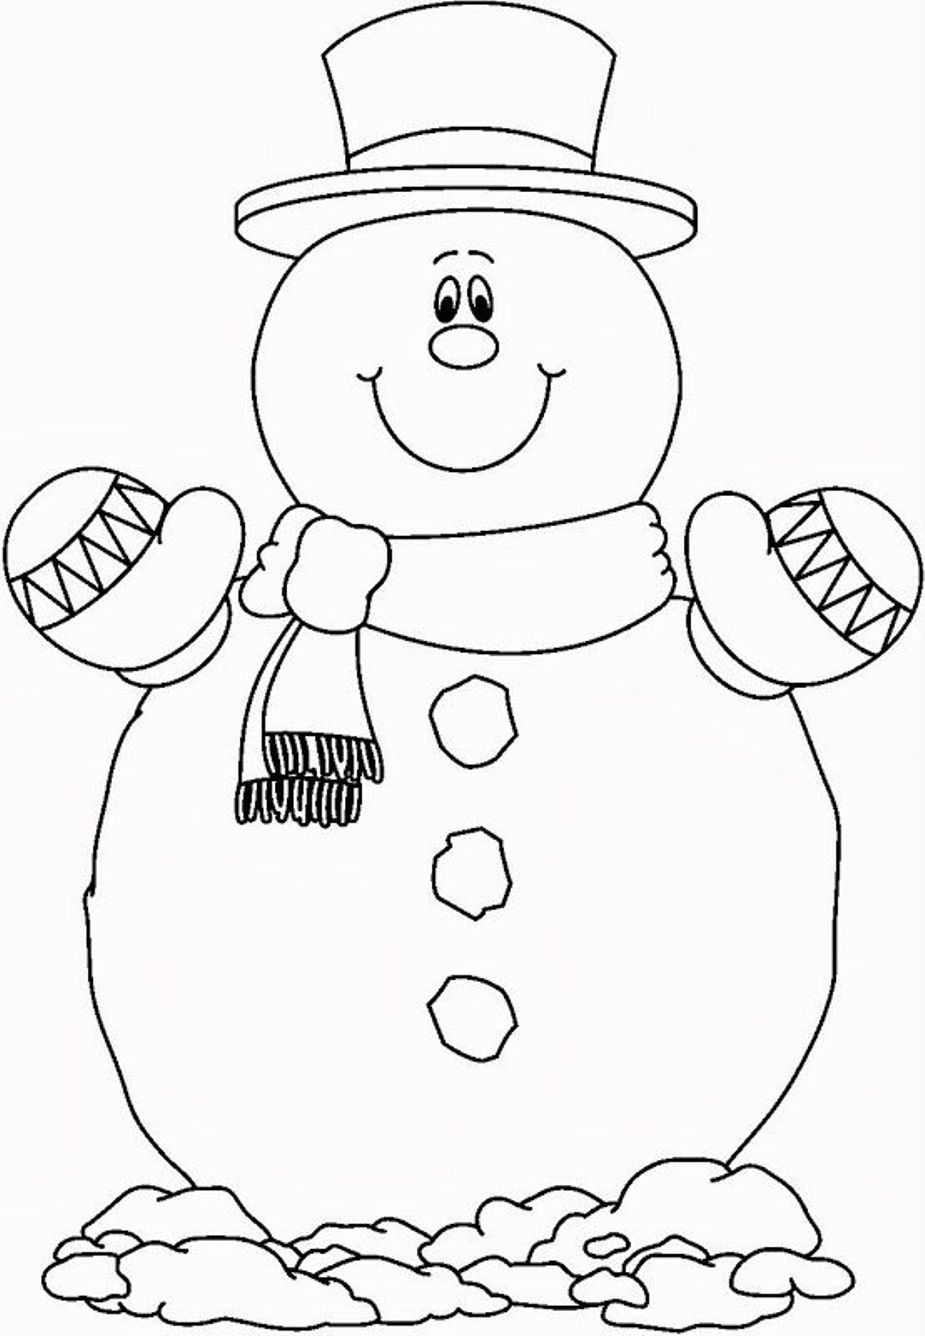 Christmas snowman coloring pages coloring home for Free coloring pages snowman